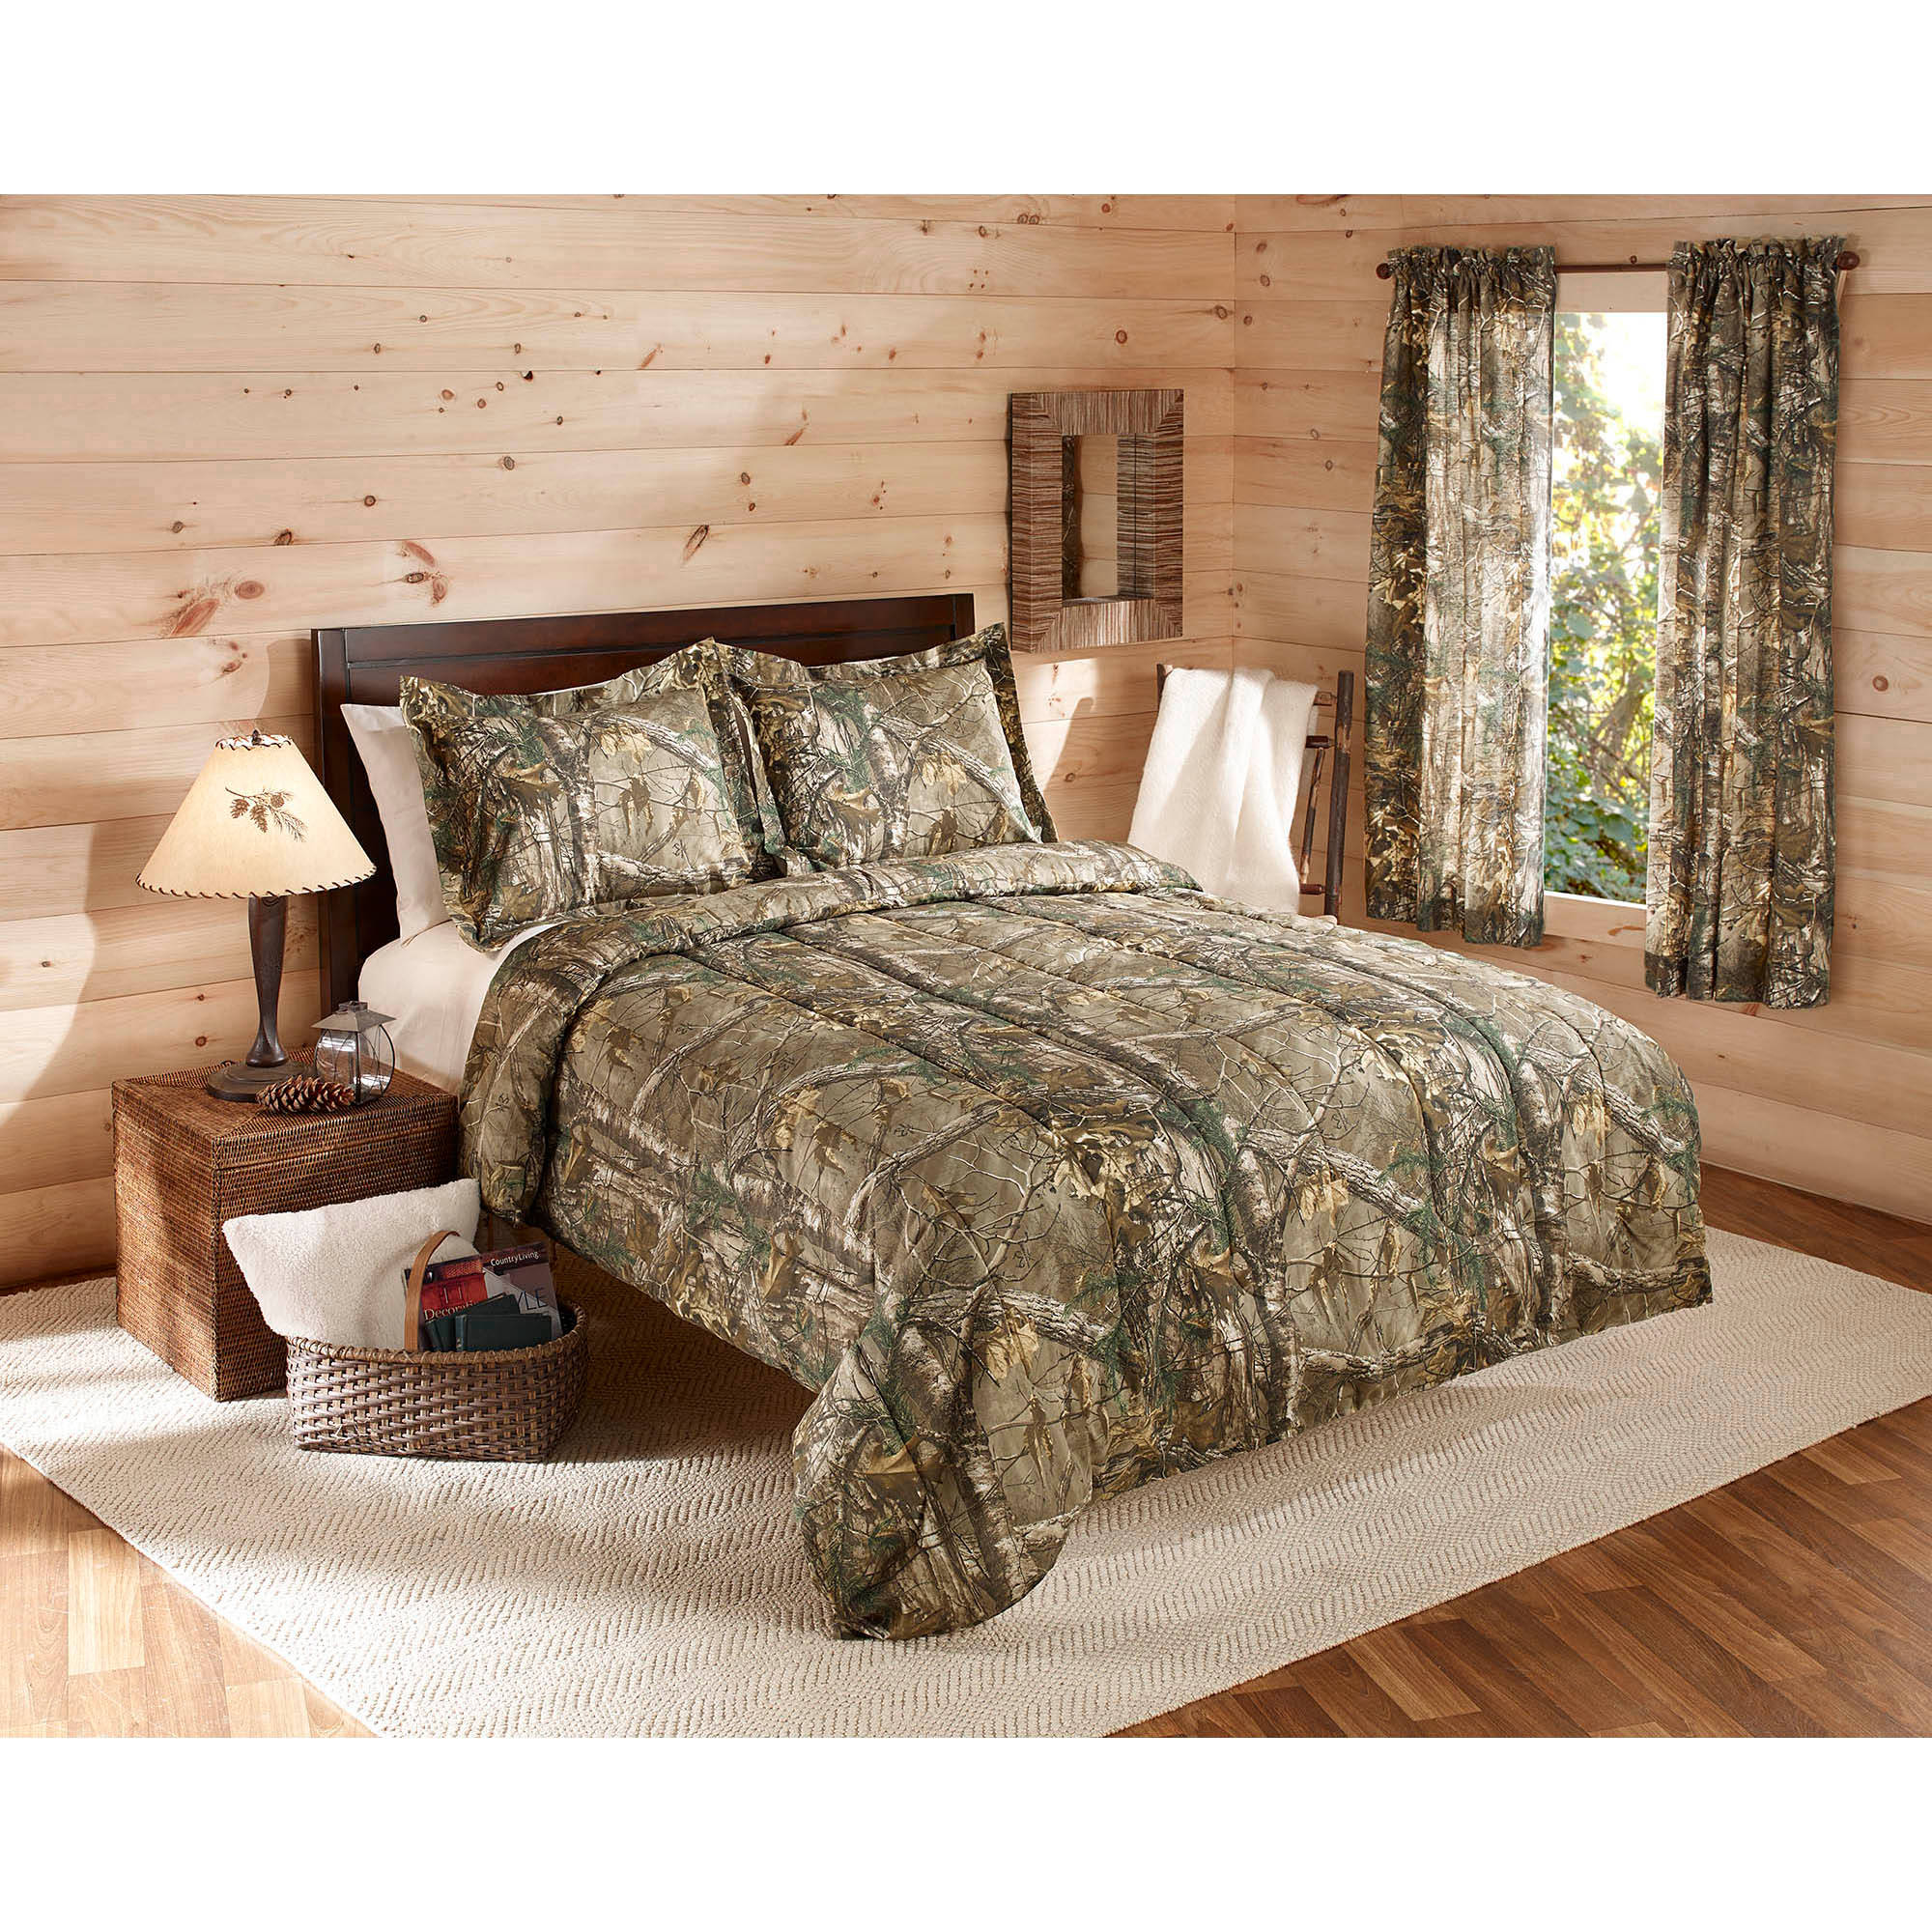 cheap better set under bedding bed clearance california discount and large zahara bath homes plus sets piece comforter king u gardens furnitures beyond size corell of